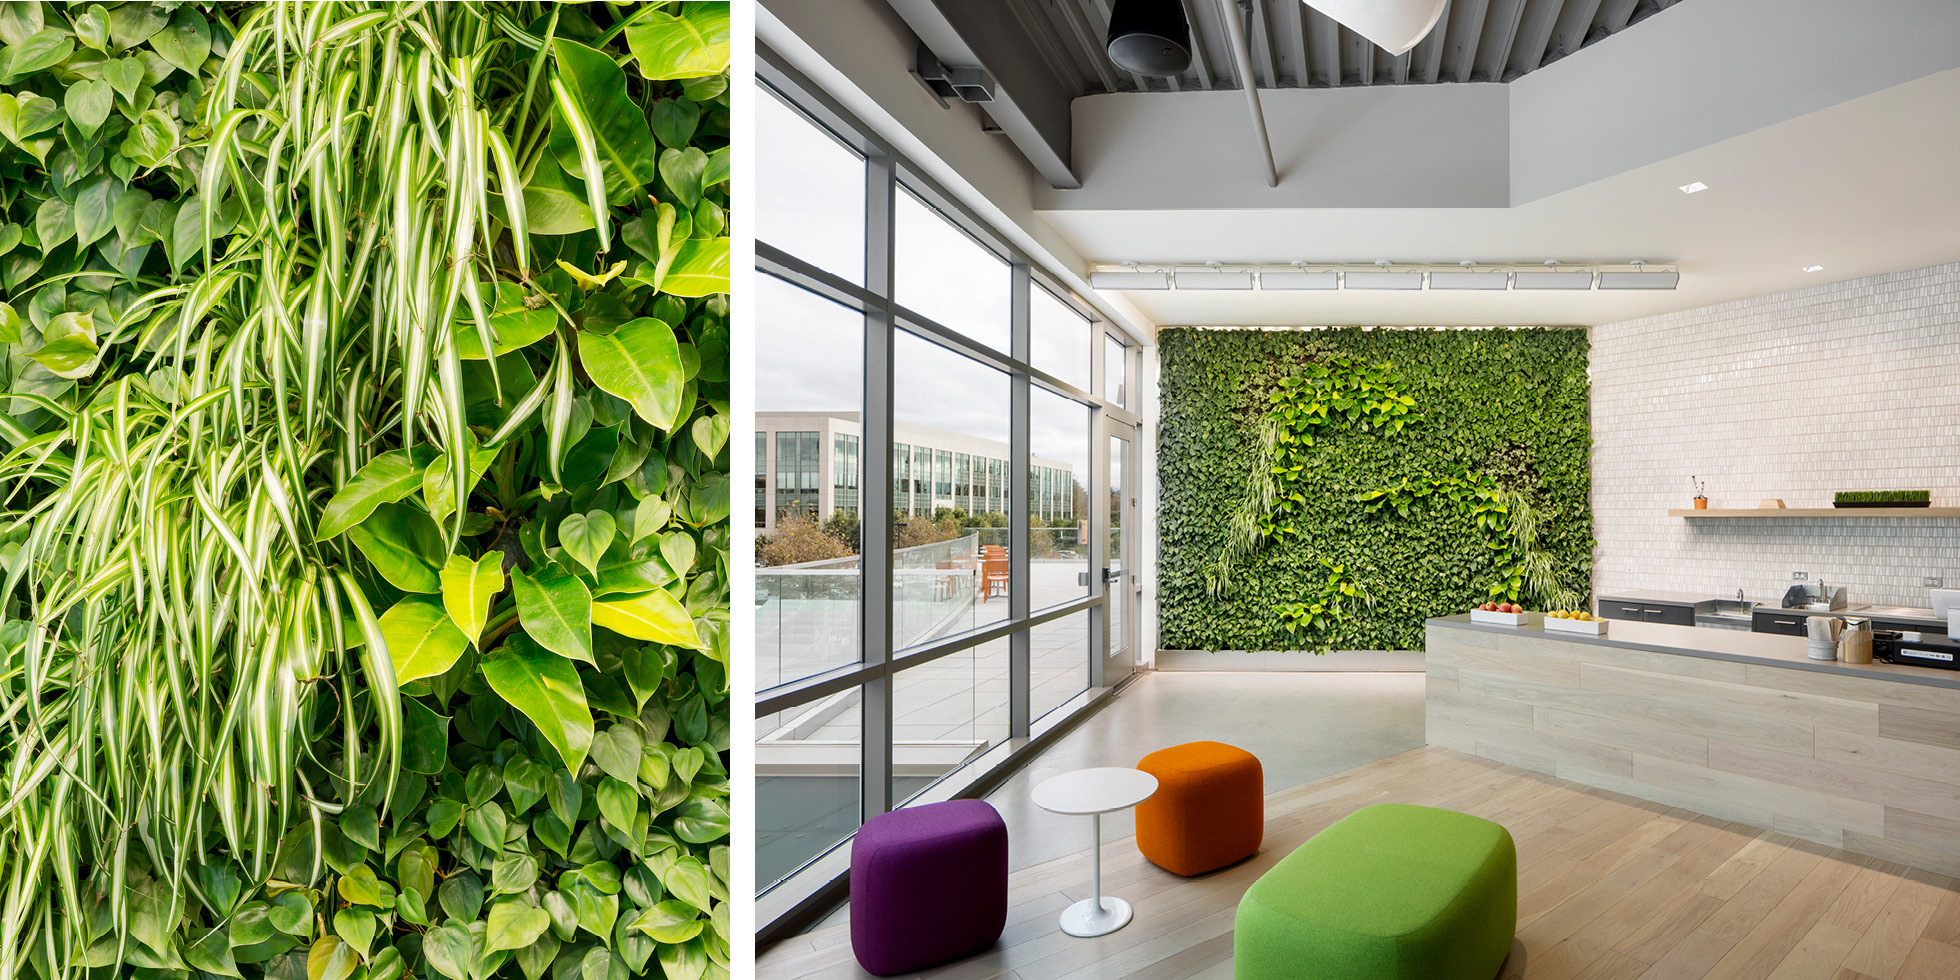 Palo Alto Networks Living Wall by Habitat Horticulture - View 4